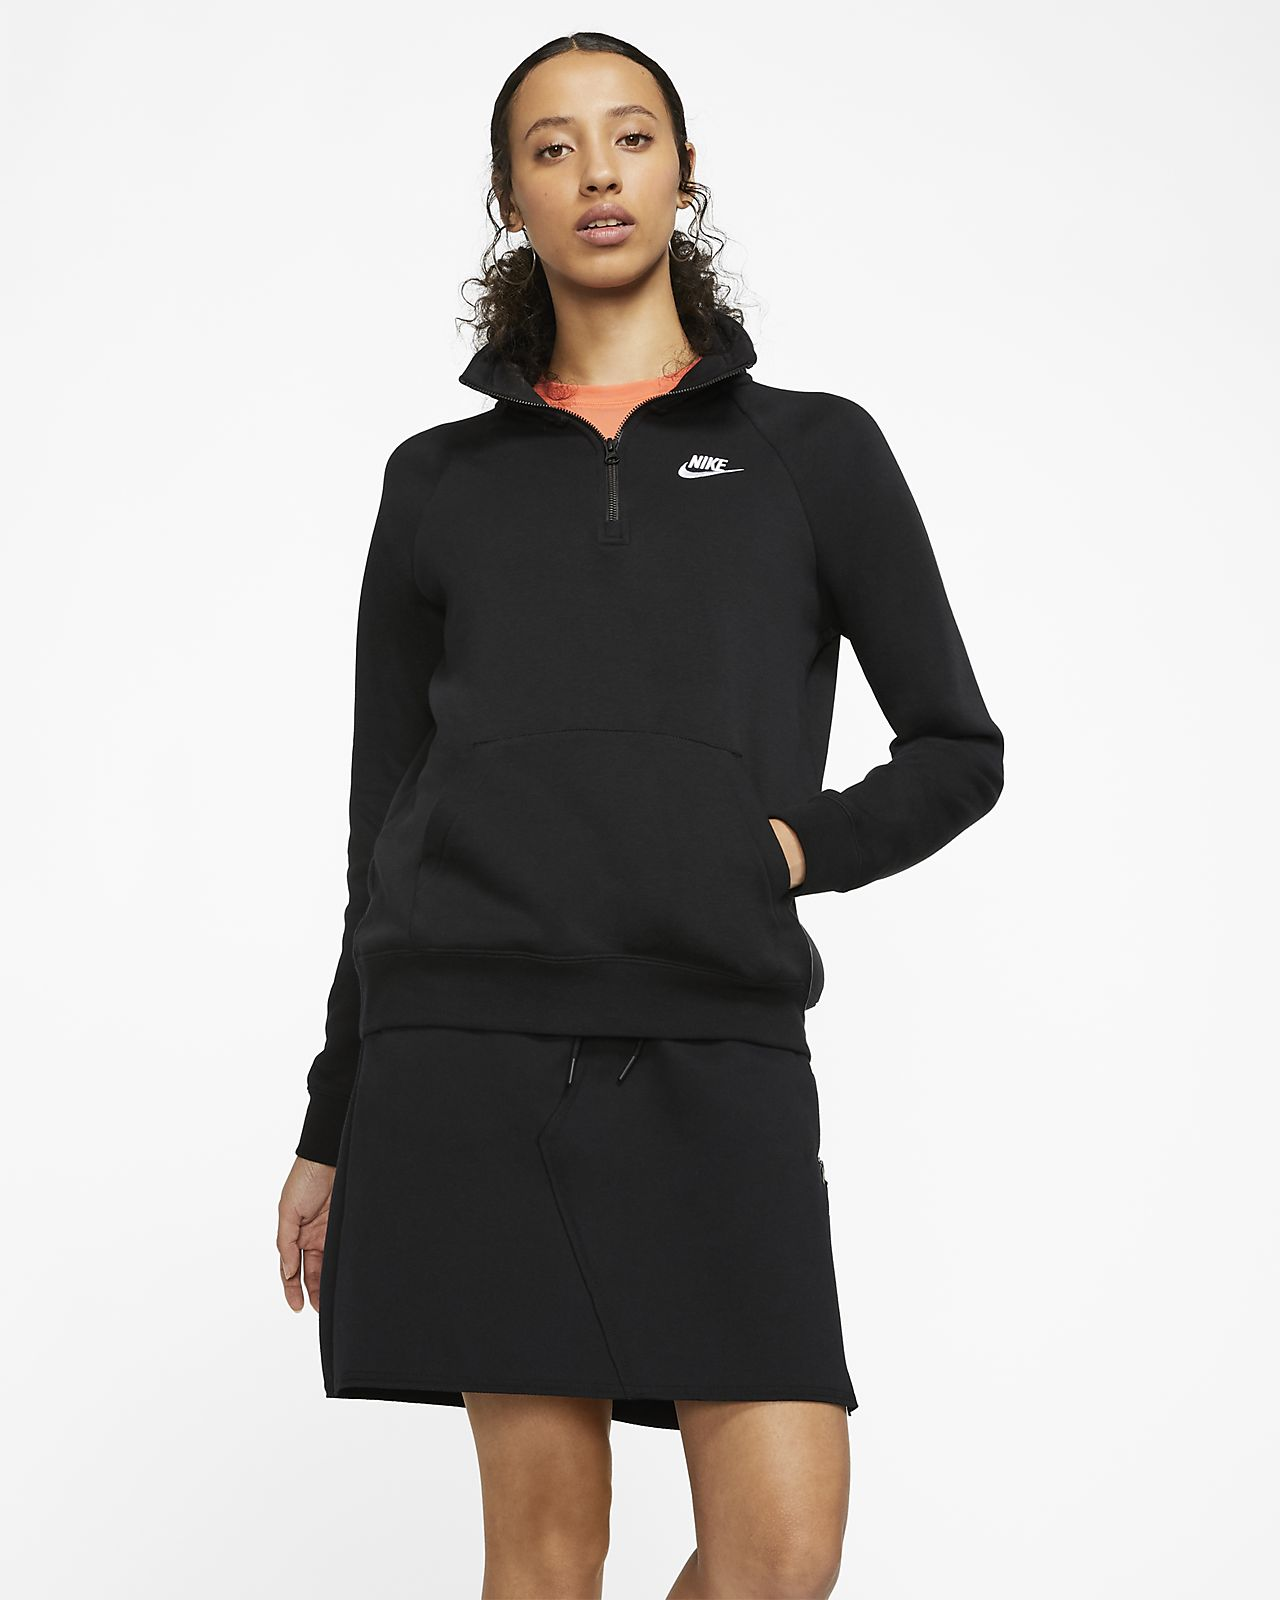 1/4 zip nike fleece